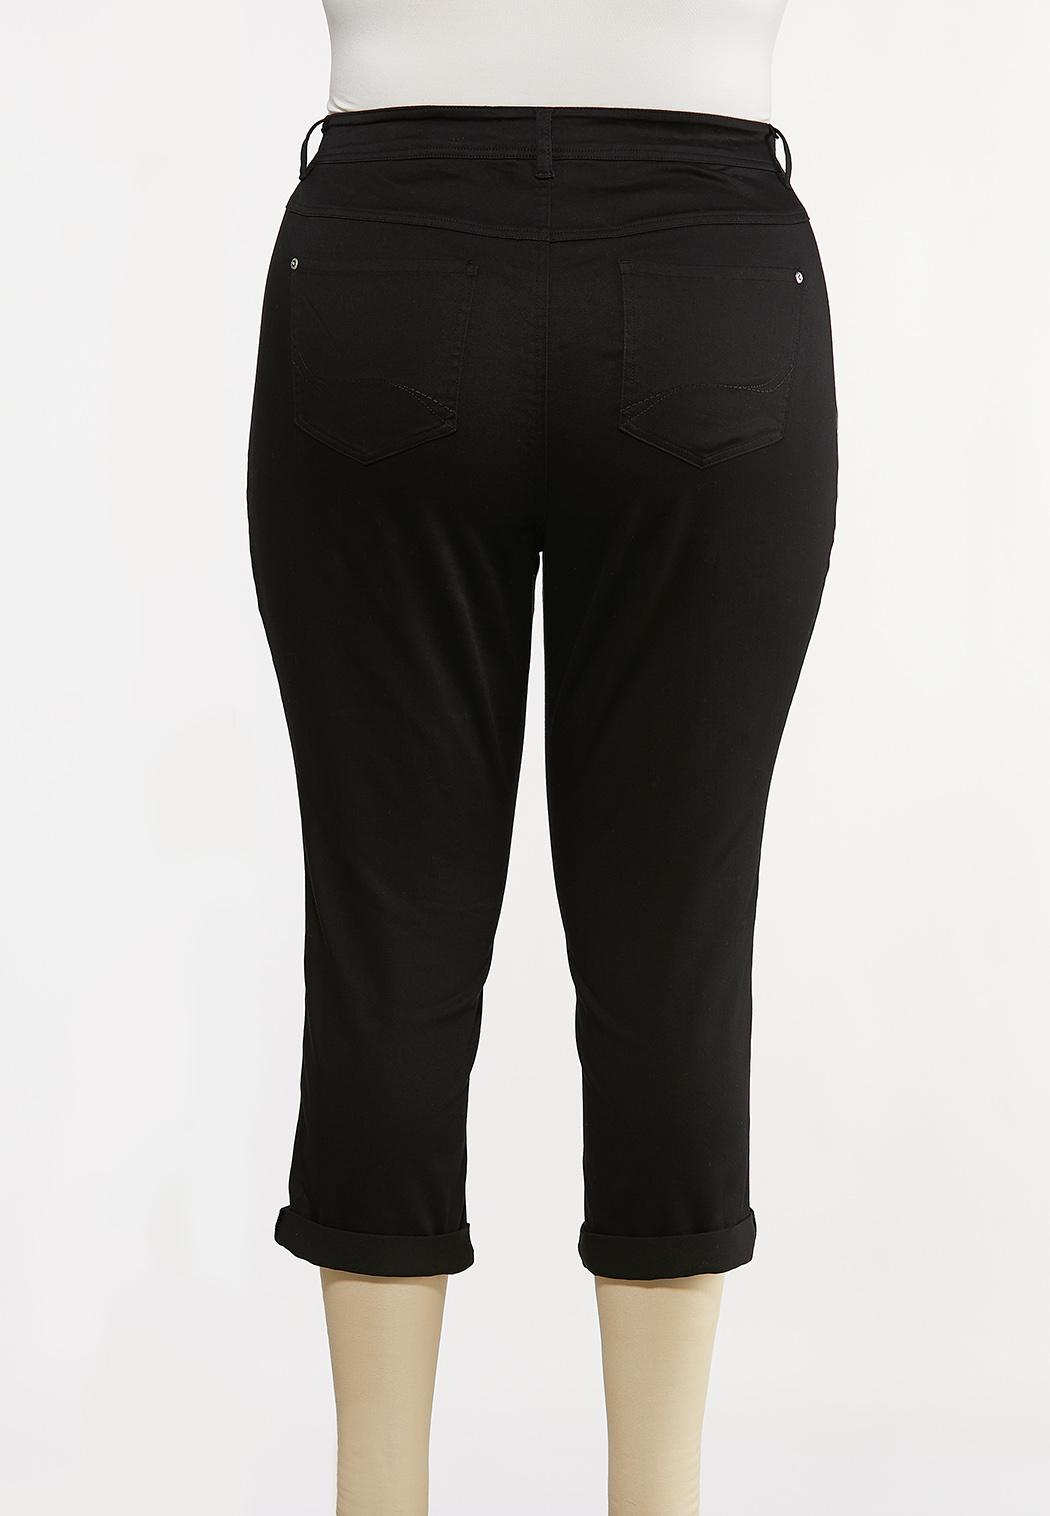 Plus Size Cropped Skinny Black Jeans (Item #44194119)